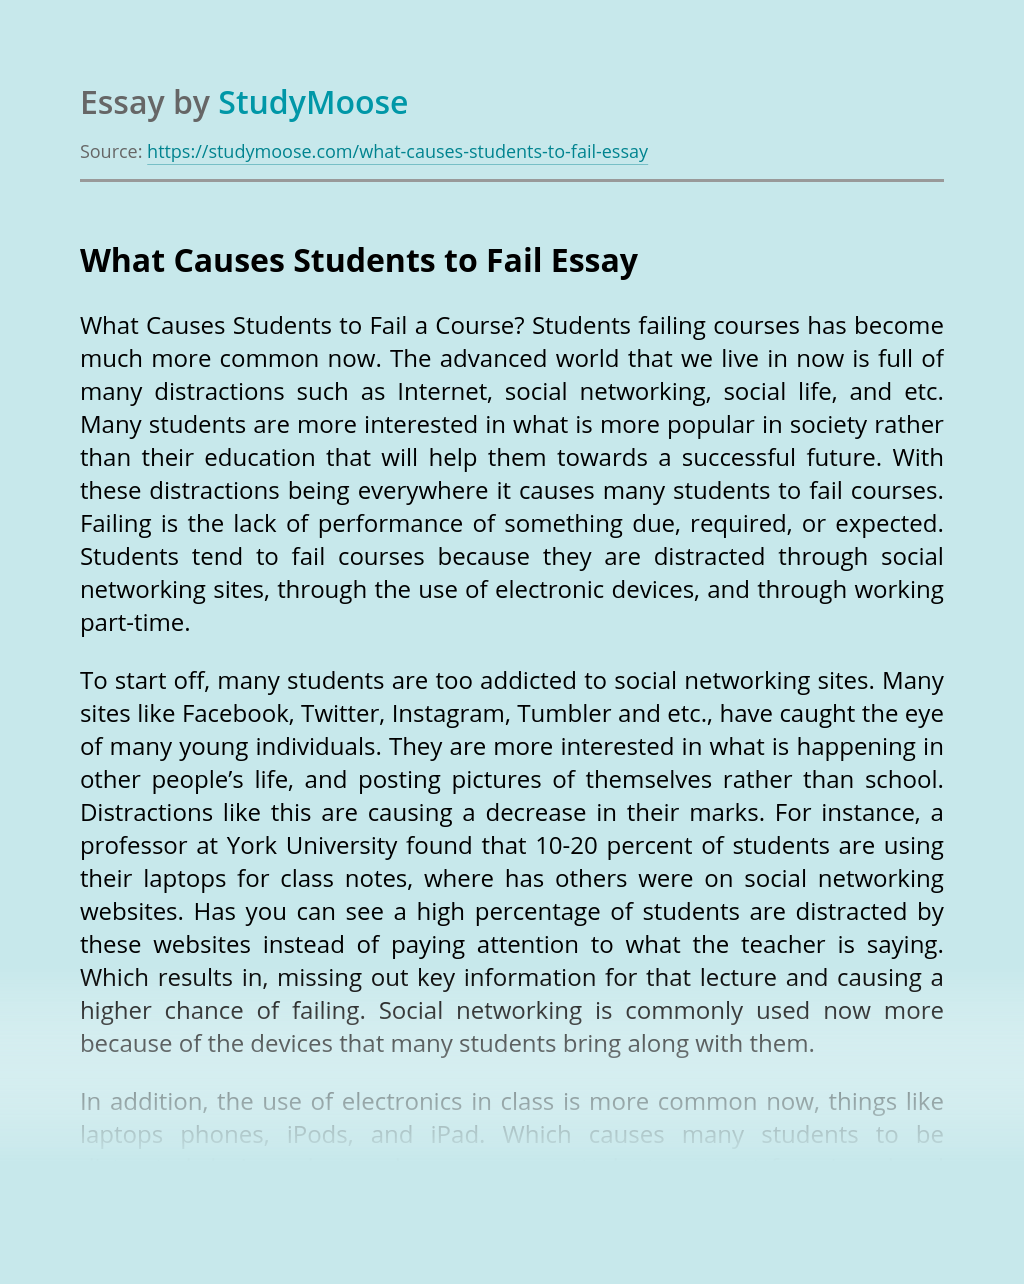 What Causes Students to Fail?